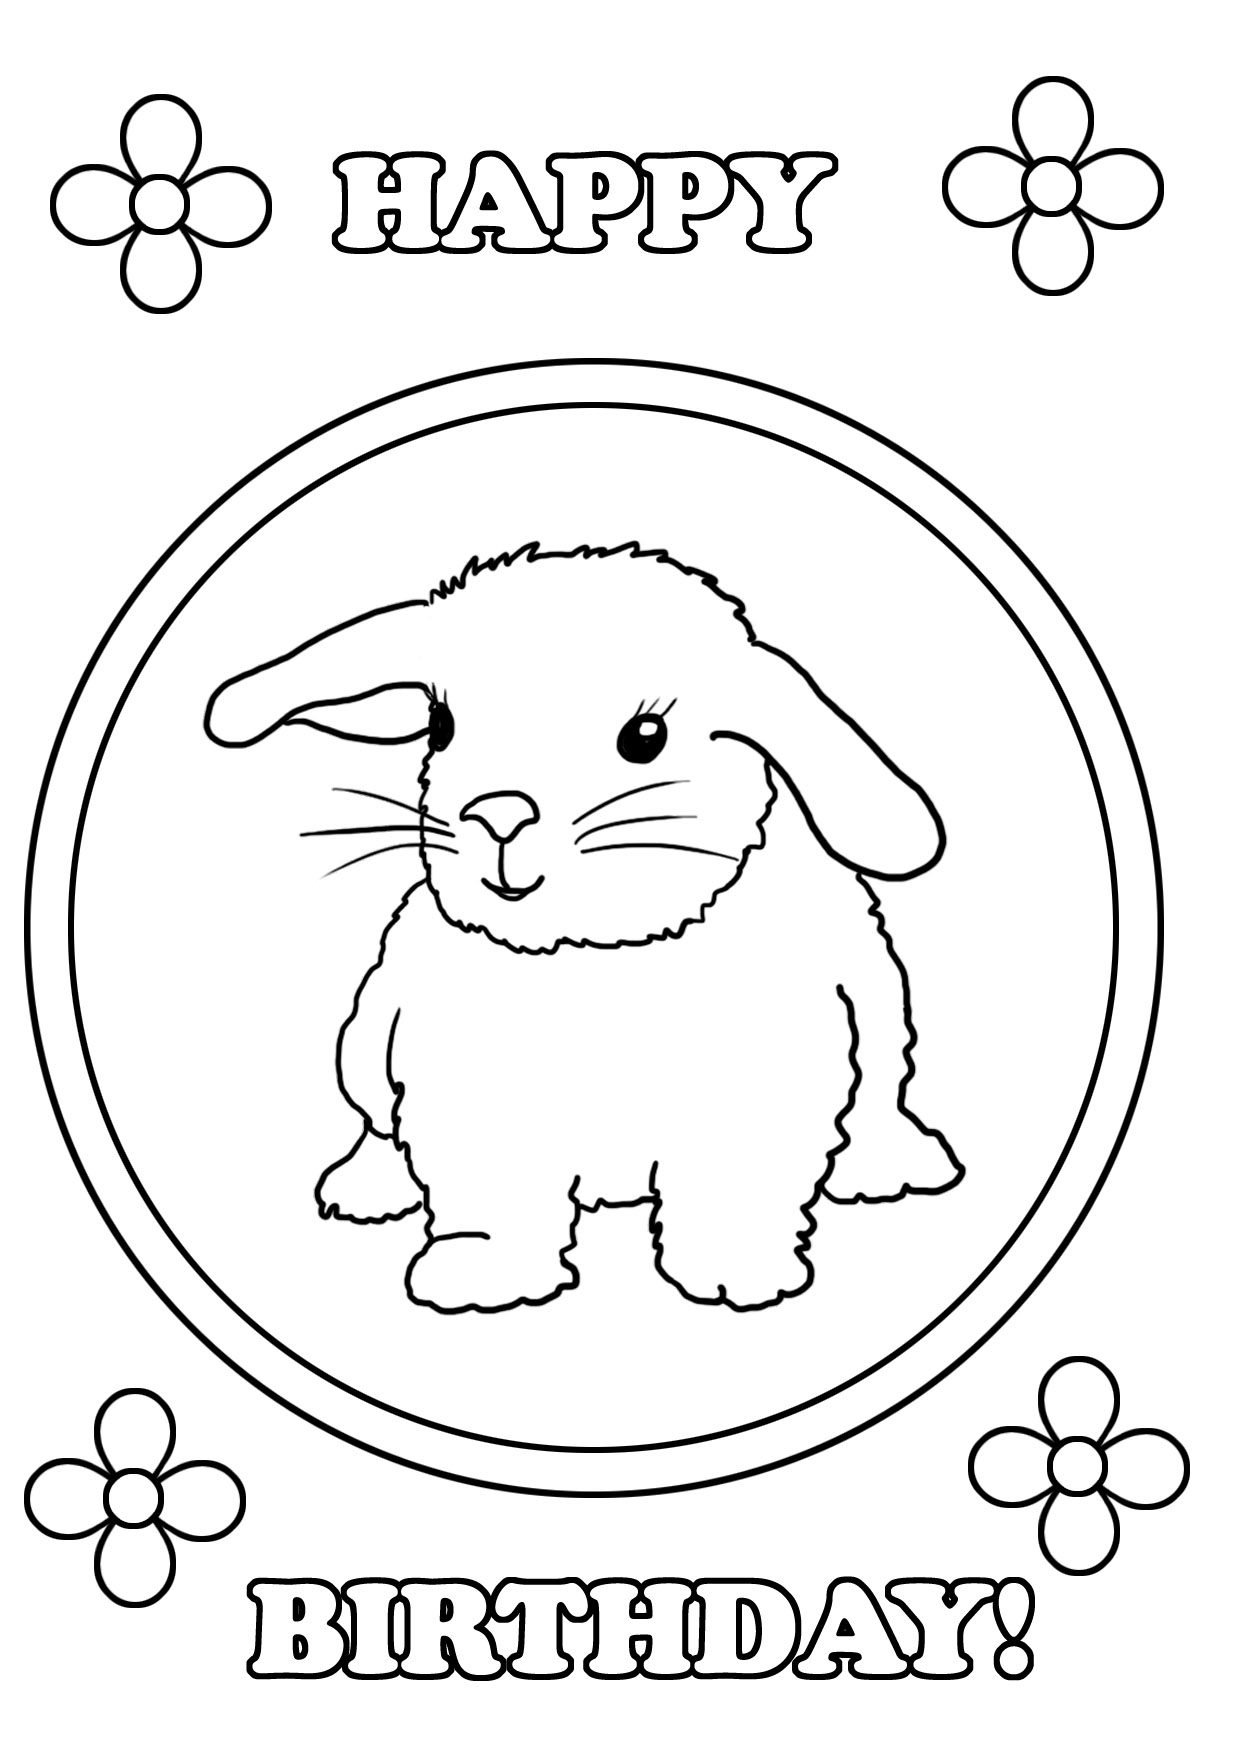 Refrigerator Coloring Page At Getcolorings